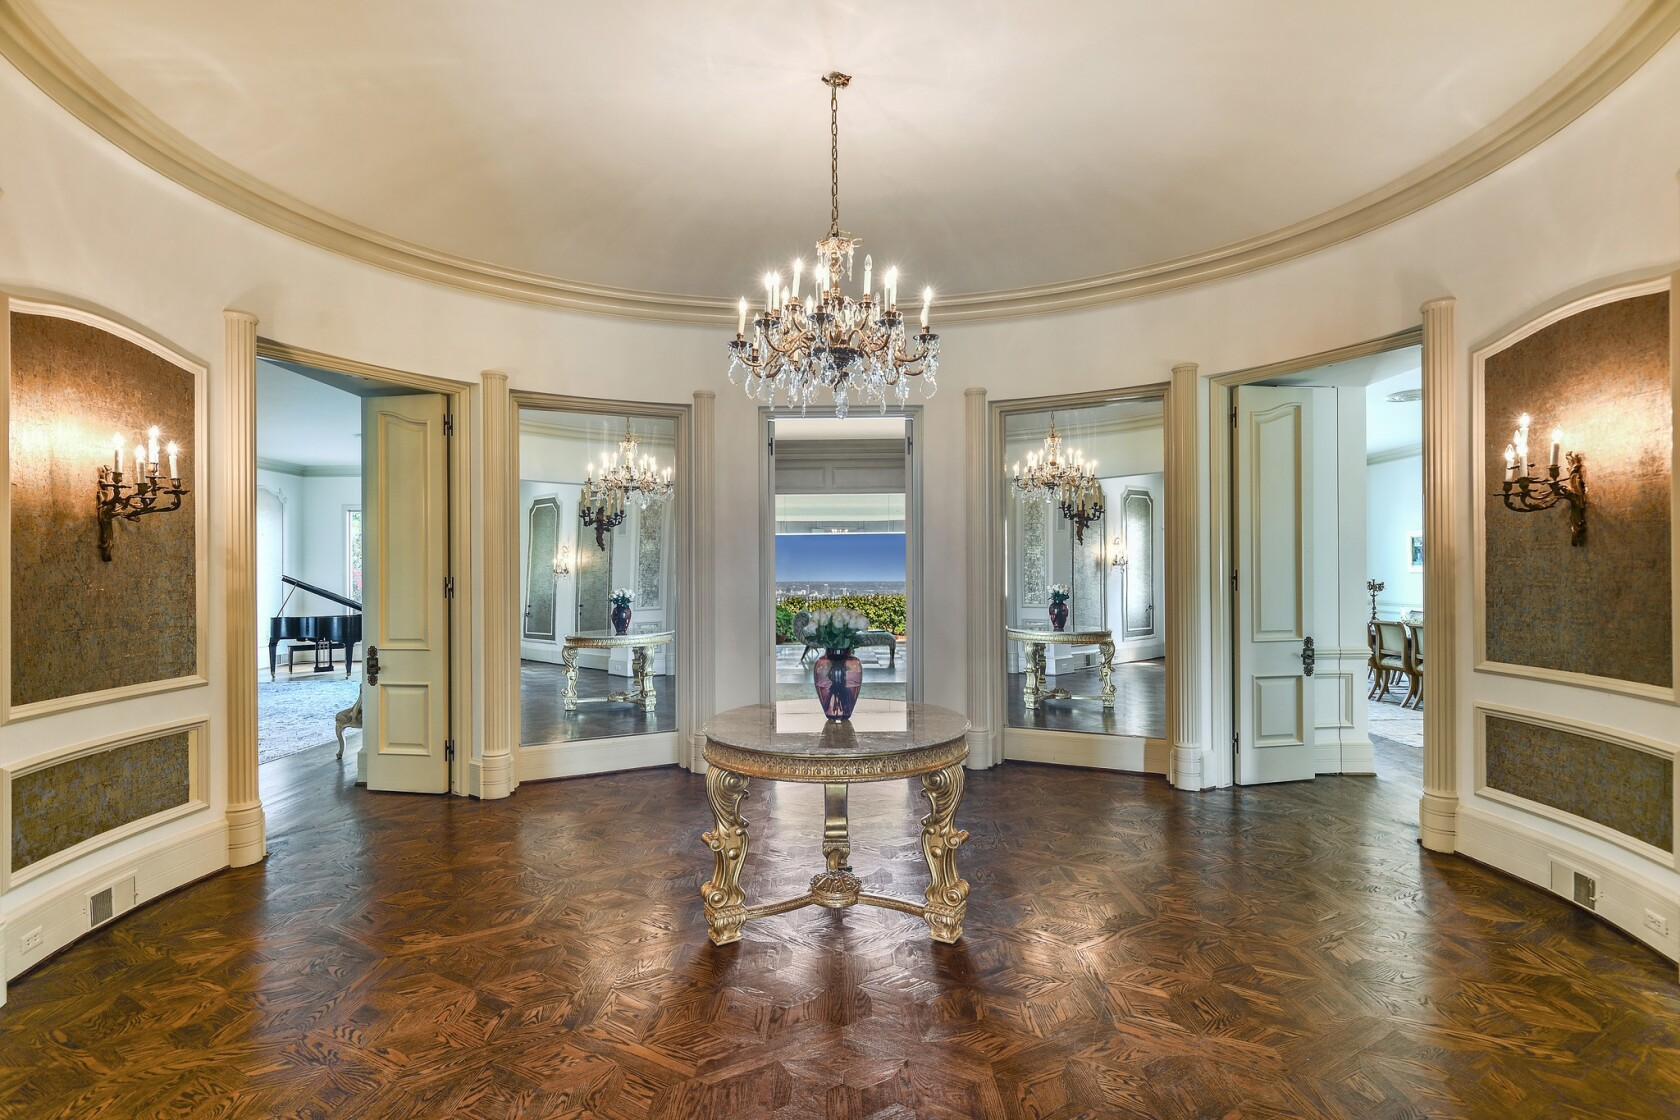 Zsa Zsa Gabors onetime home in Bel-Air fetches $20.8